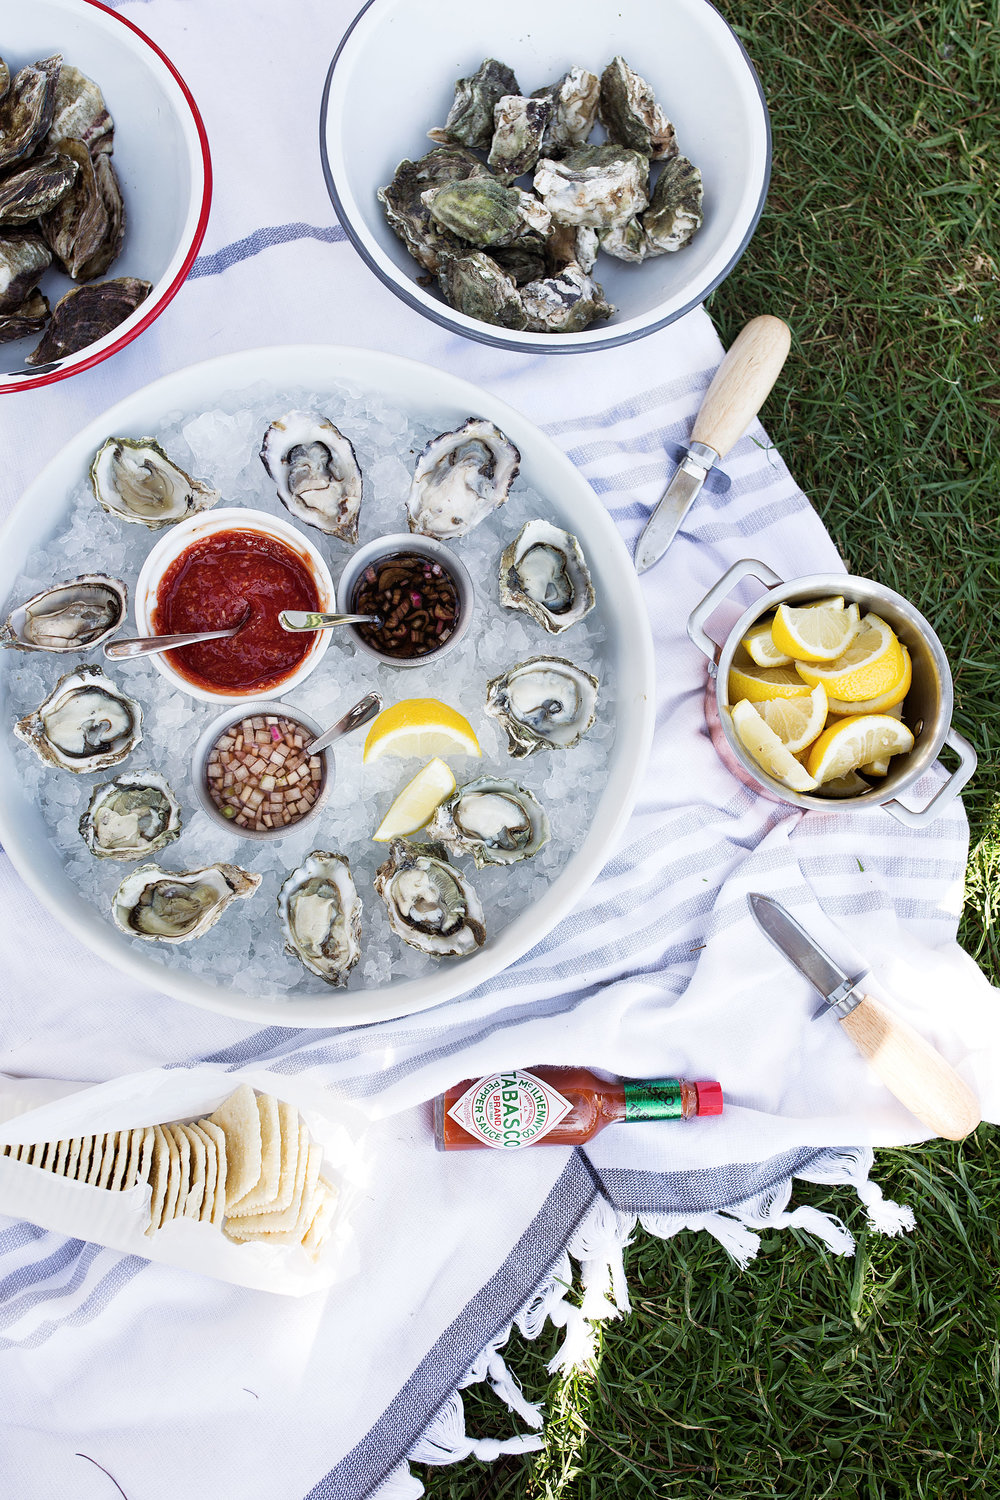 shuck yeah: all about oysters, shellfish picnic in the park